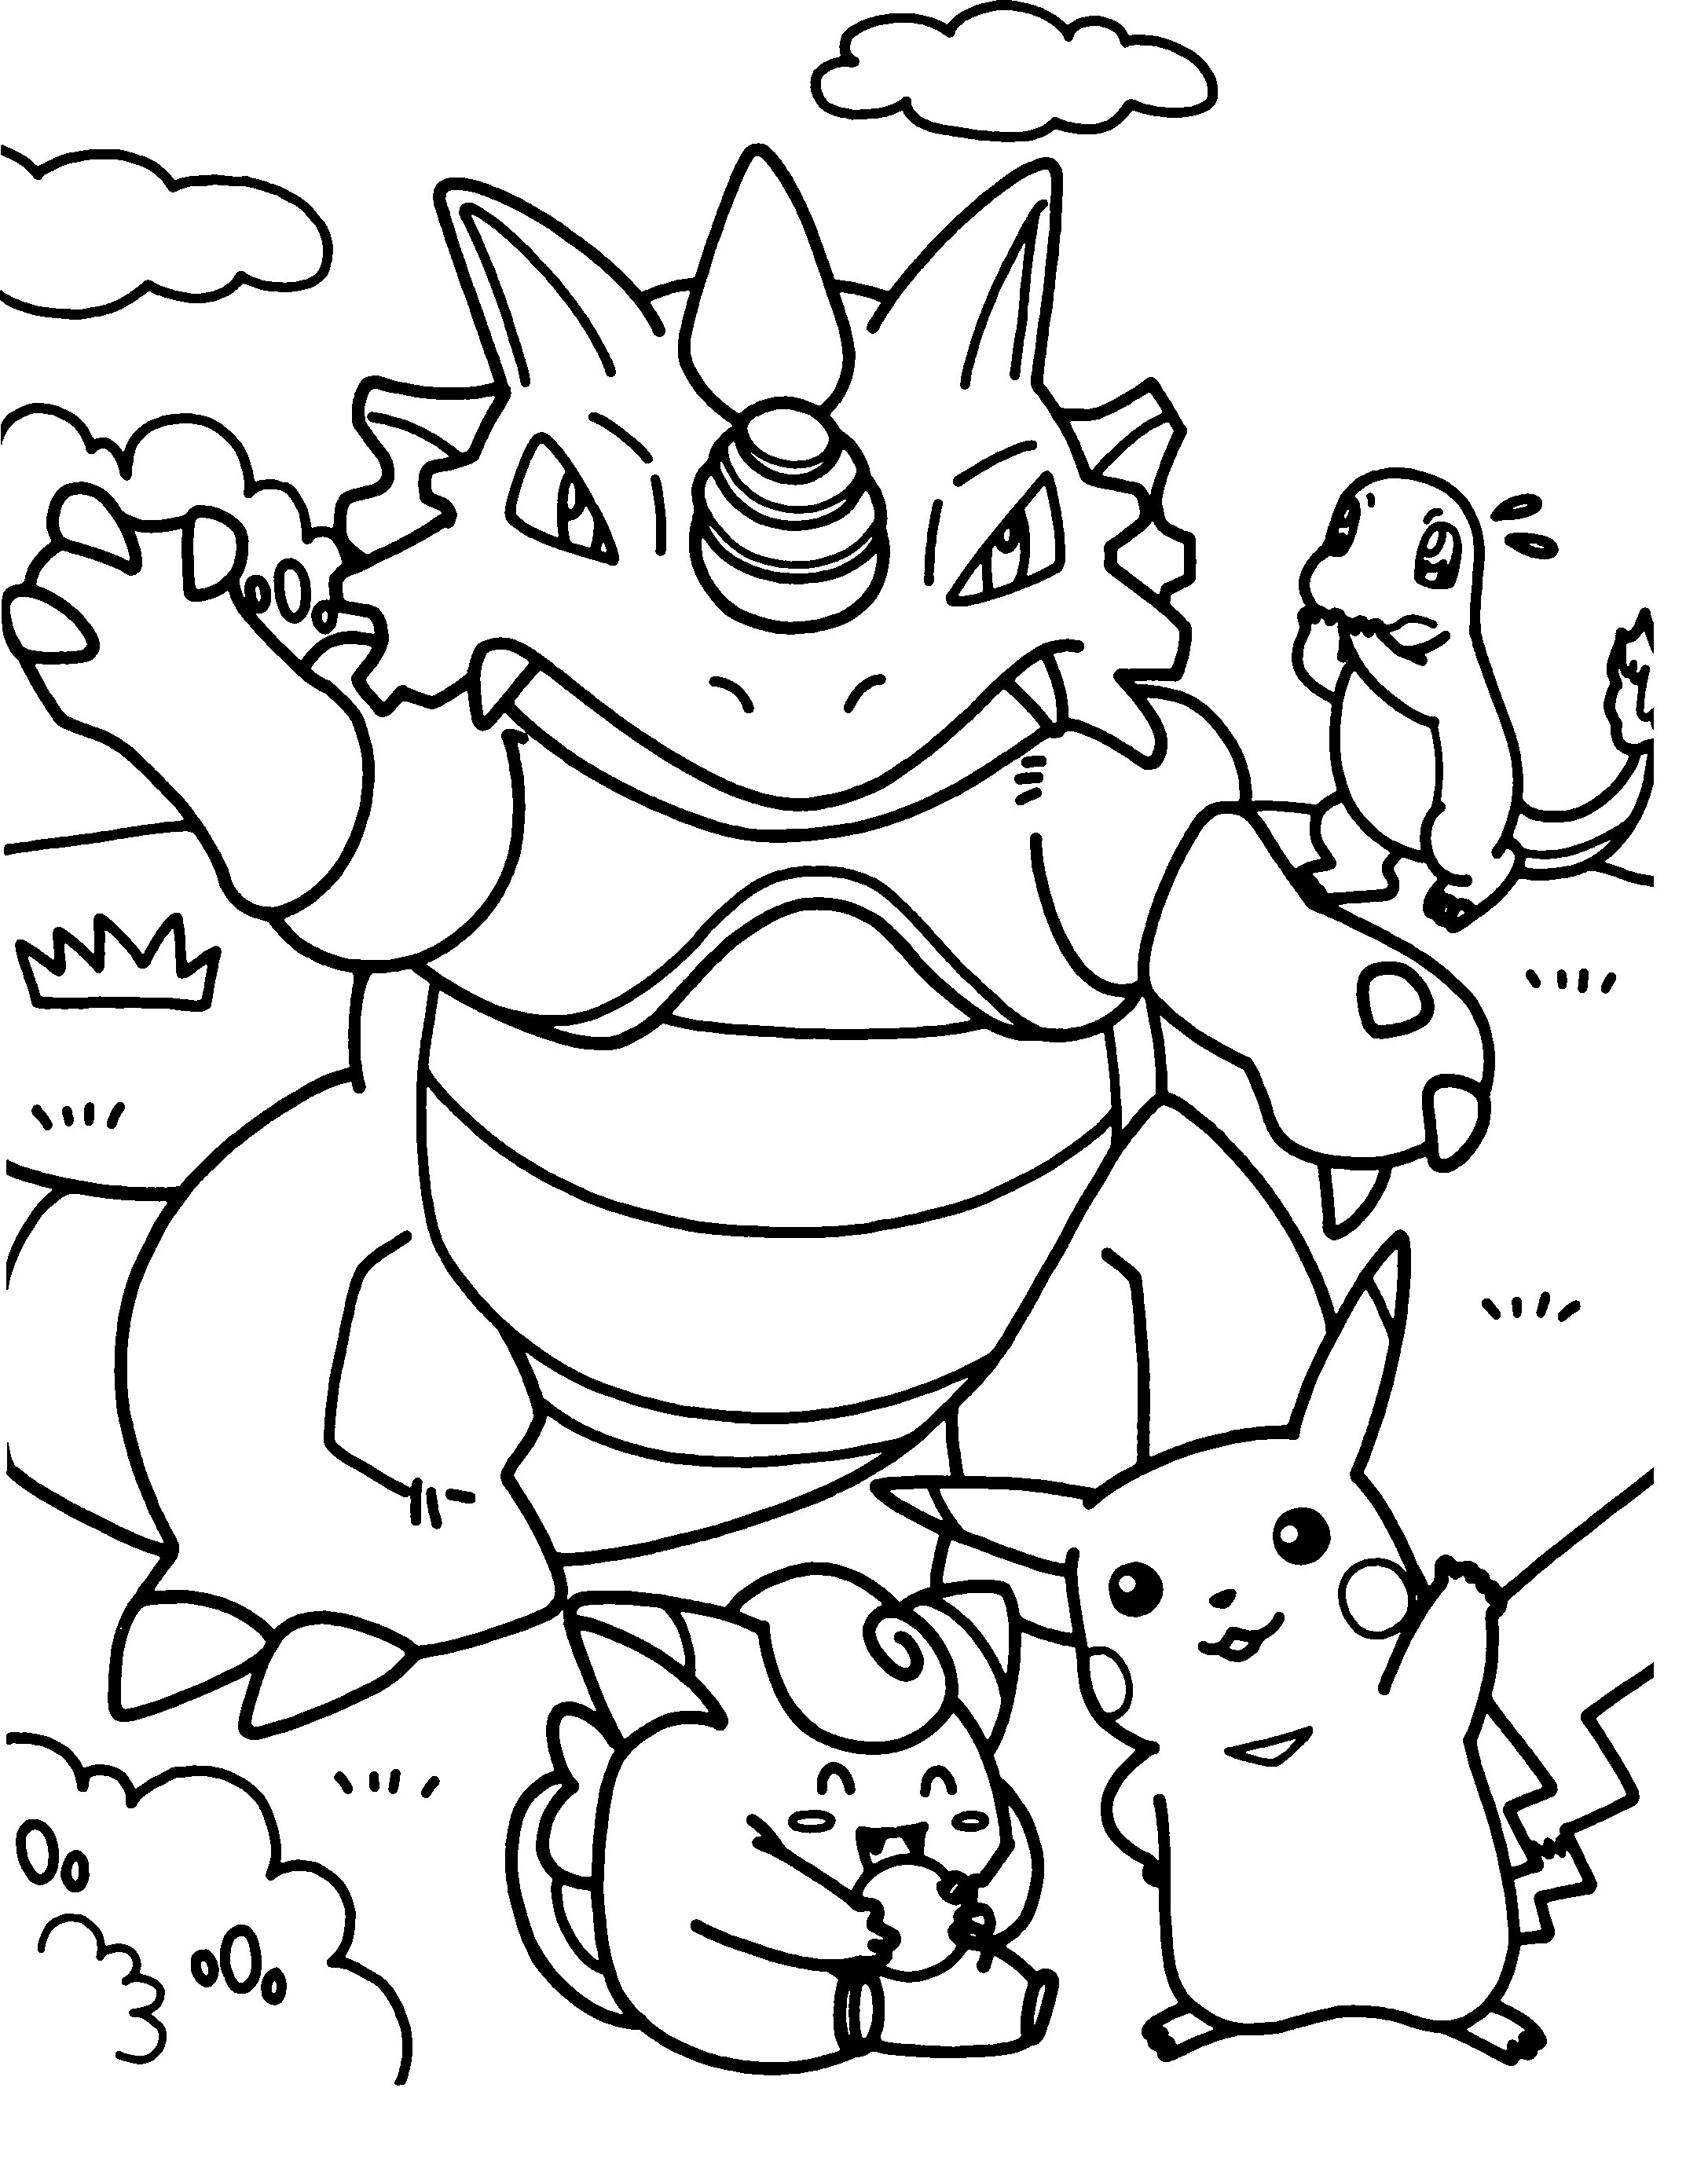 printable pokemon coloring pages legendary pokemon coloring pages free k5 worksheets pokemon coloring printable pages